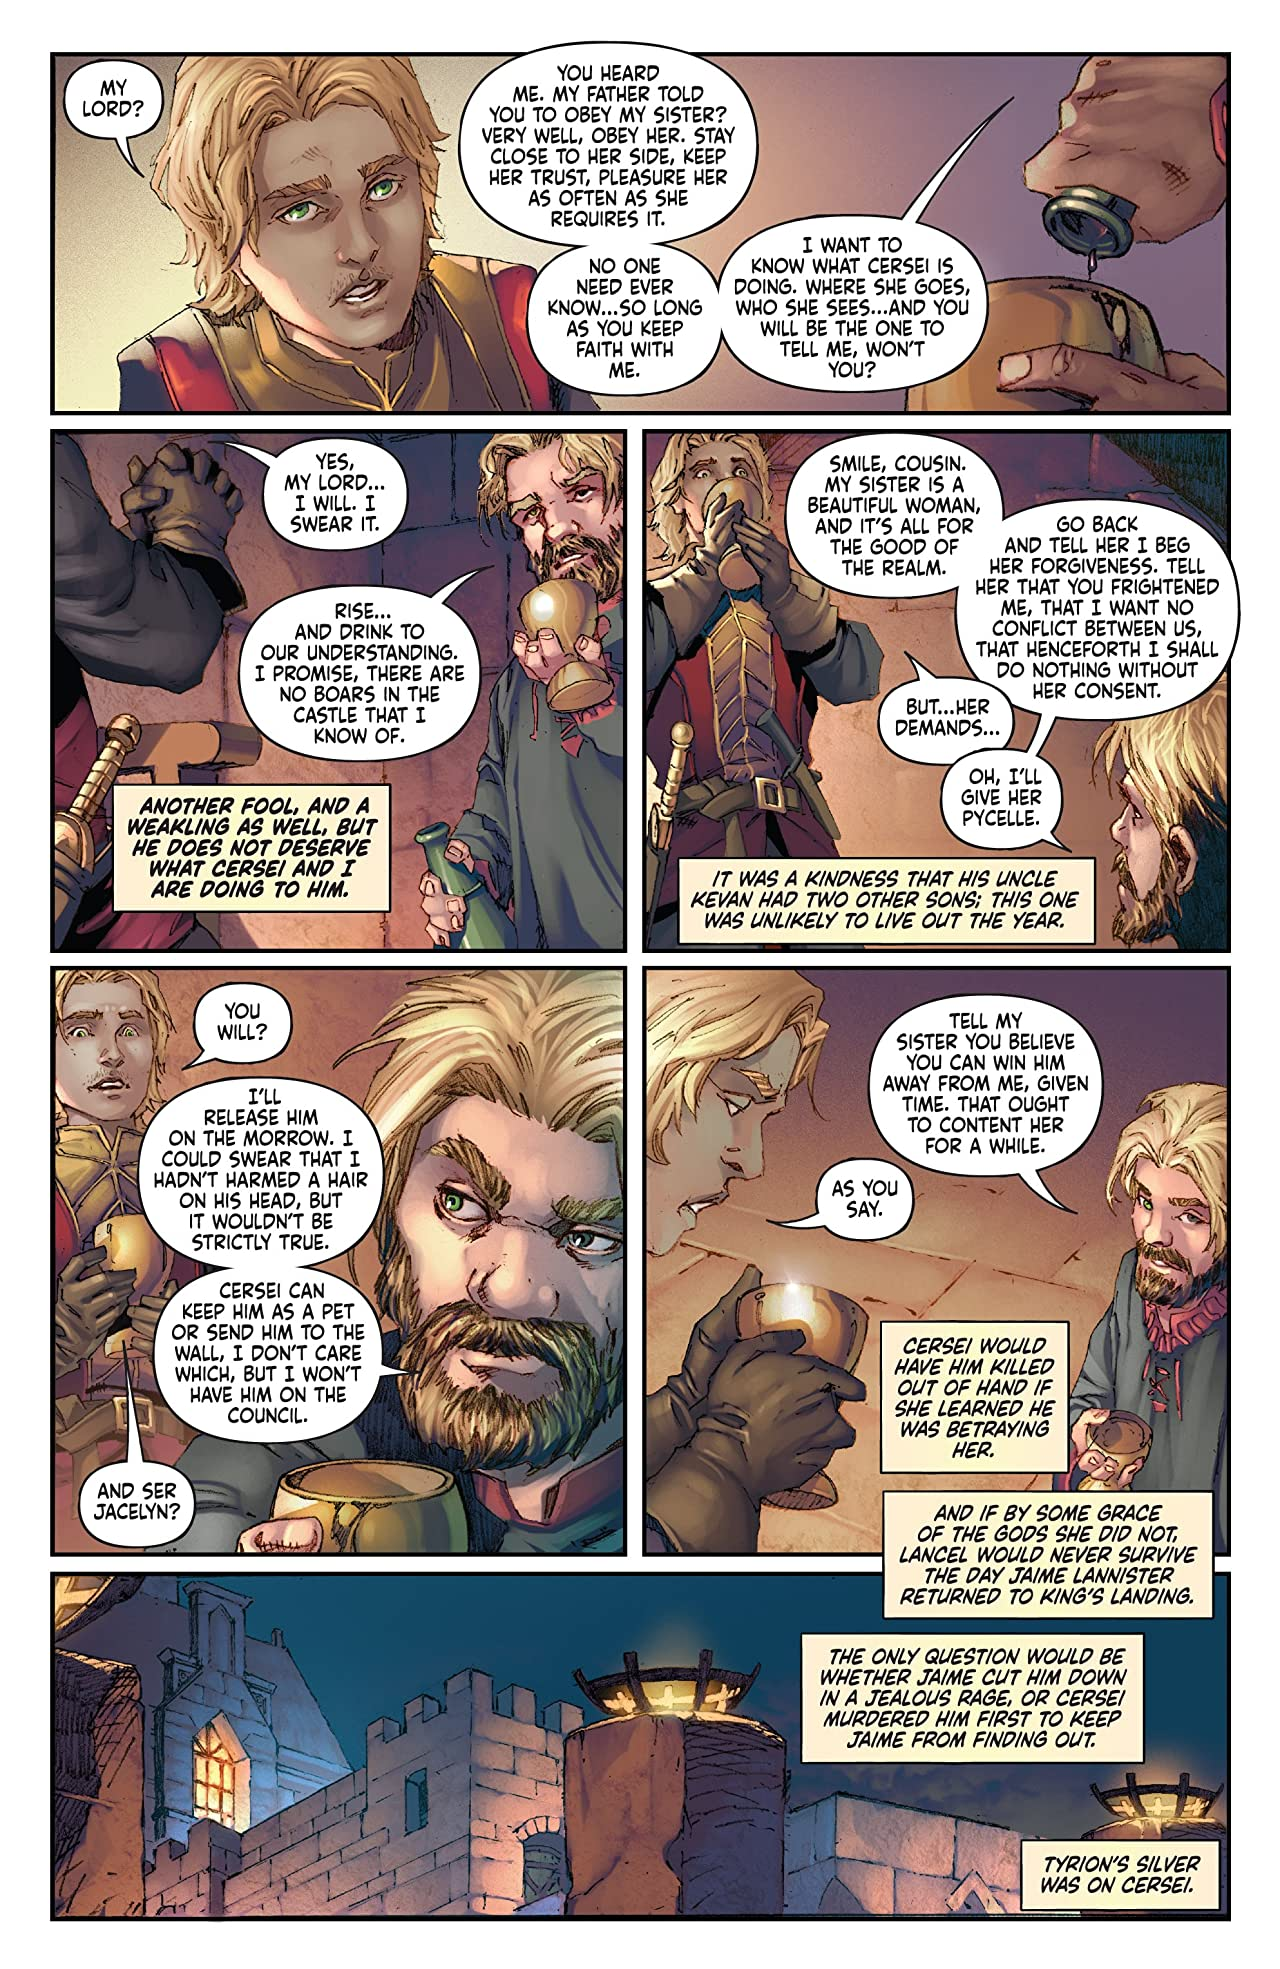 George R.R. Martin's A Clash Of Kings: The Comic Book No.16